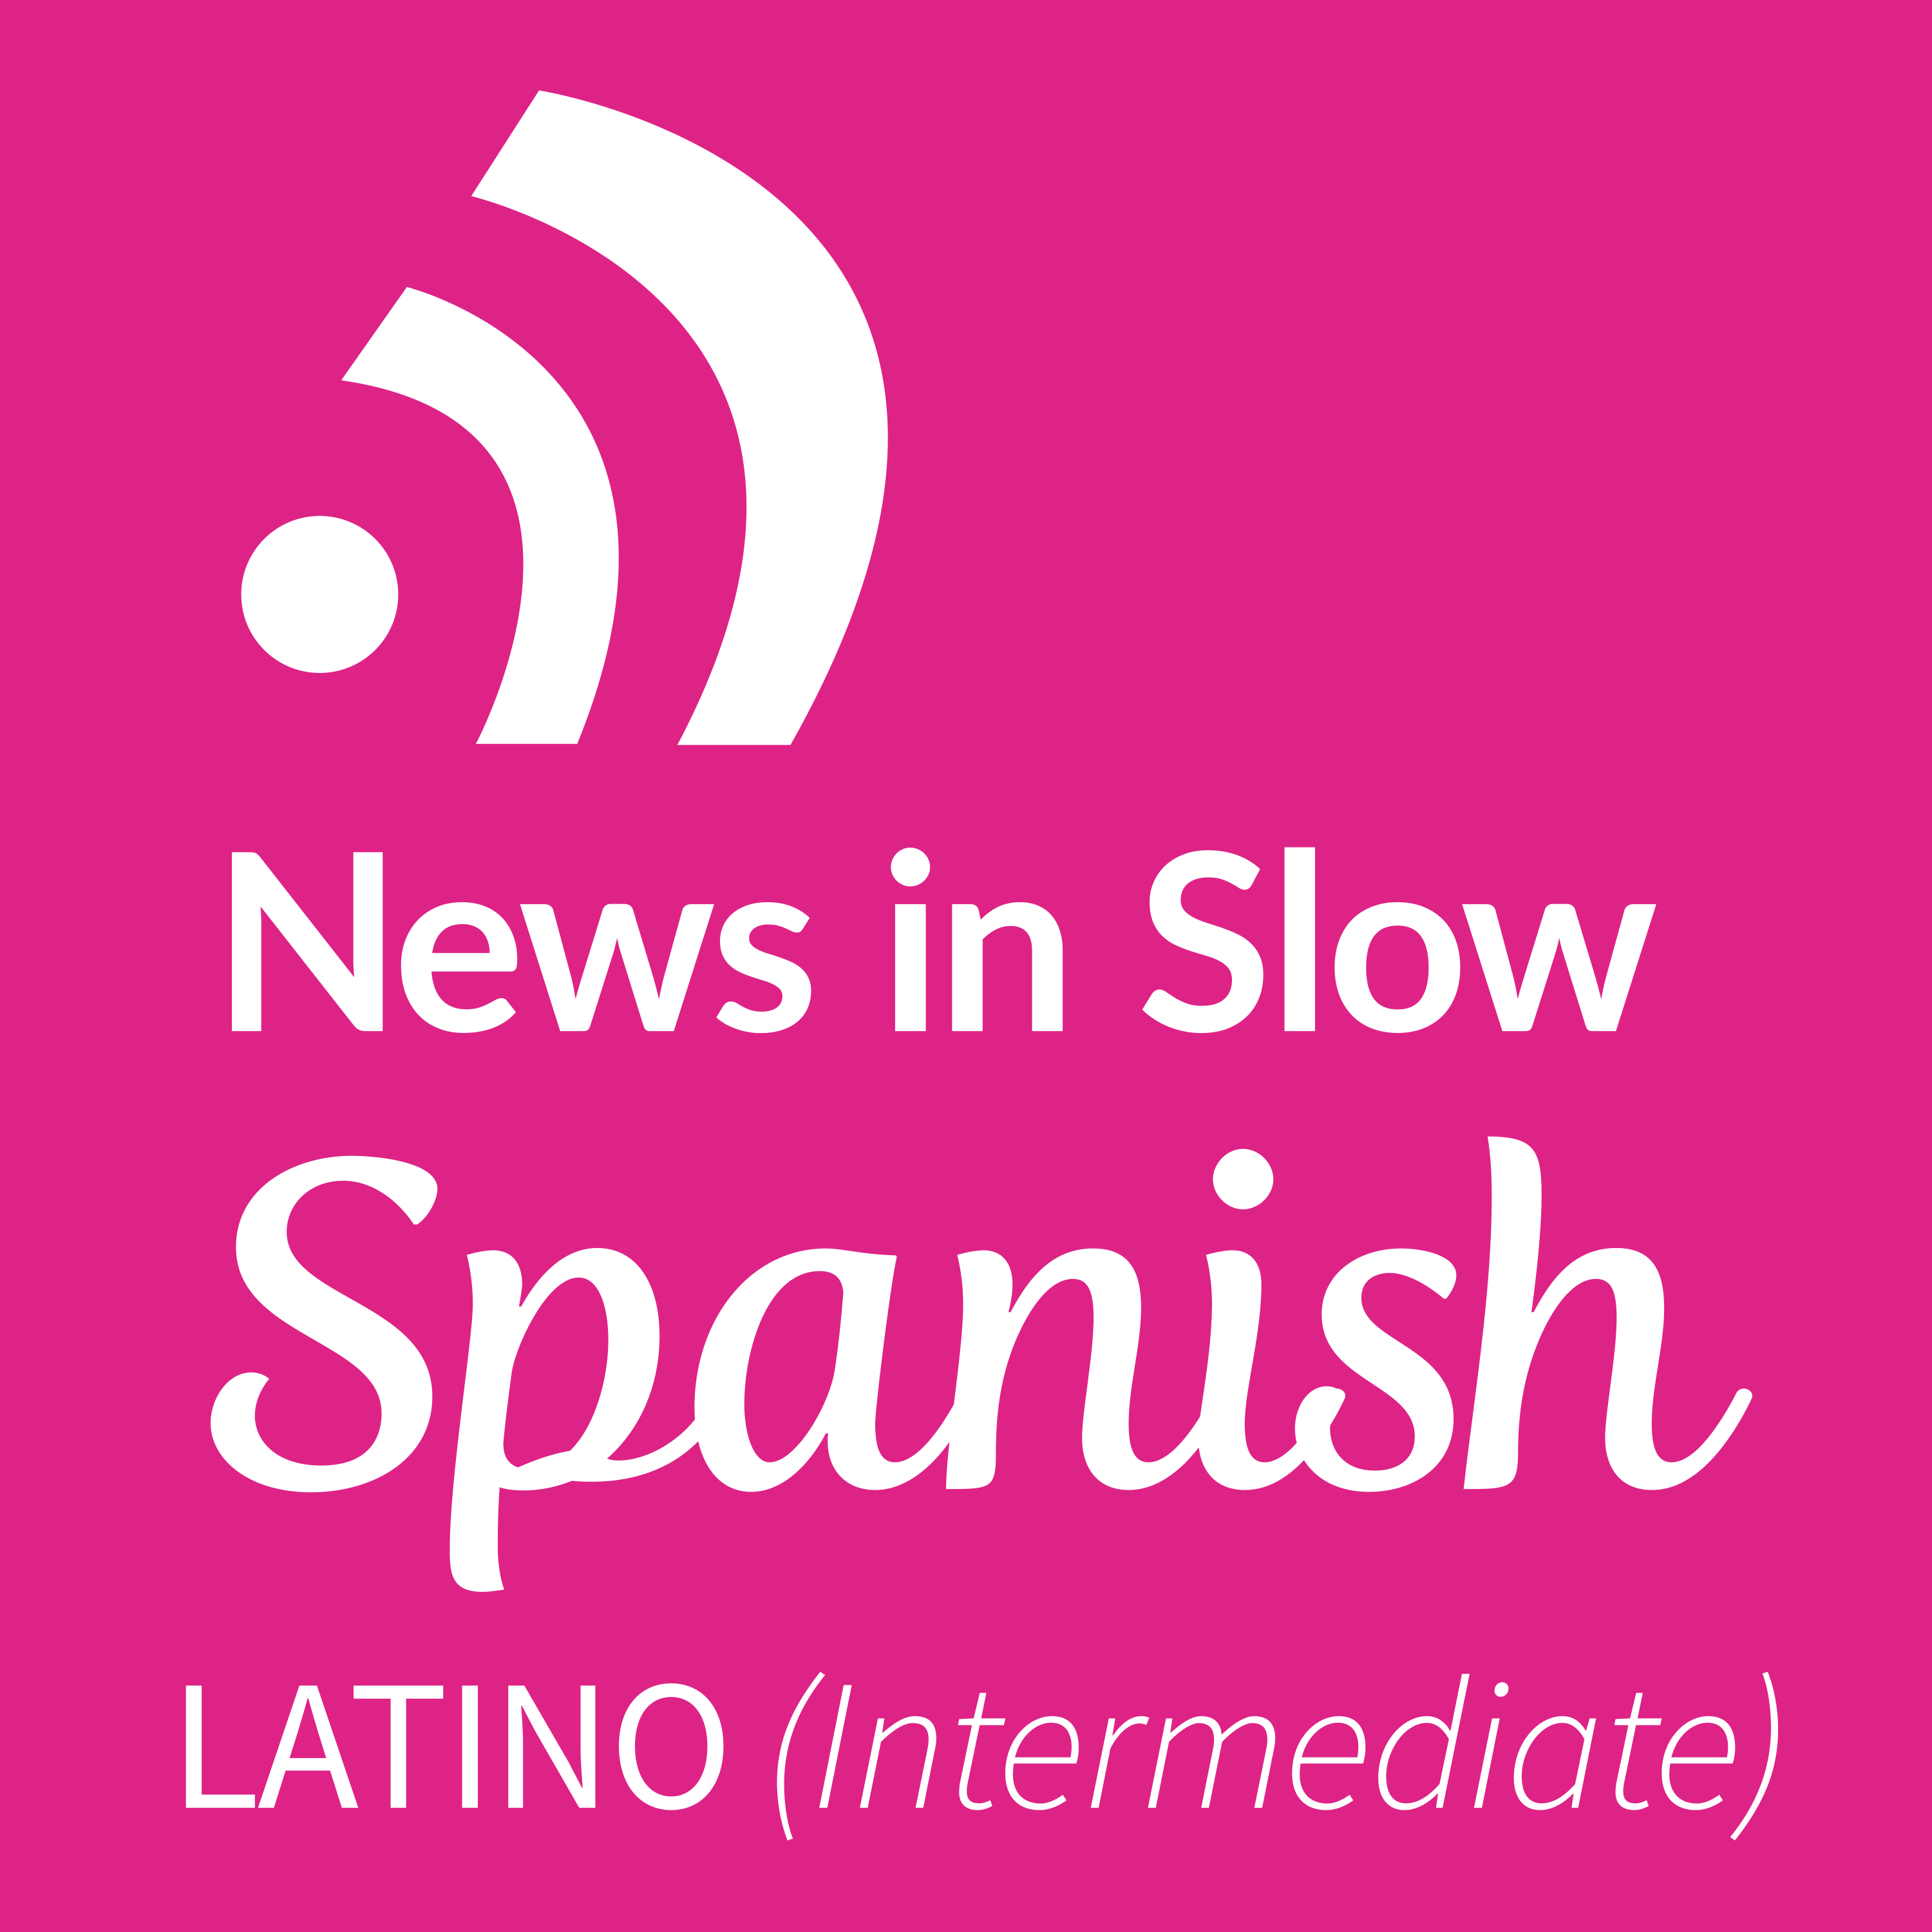 News in Slow Spanish Latino - # 191 - Spanish news, grammar and idiomatic expressions